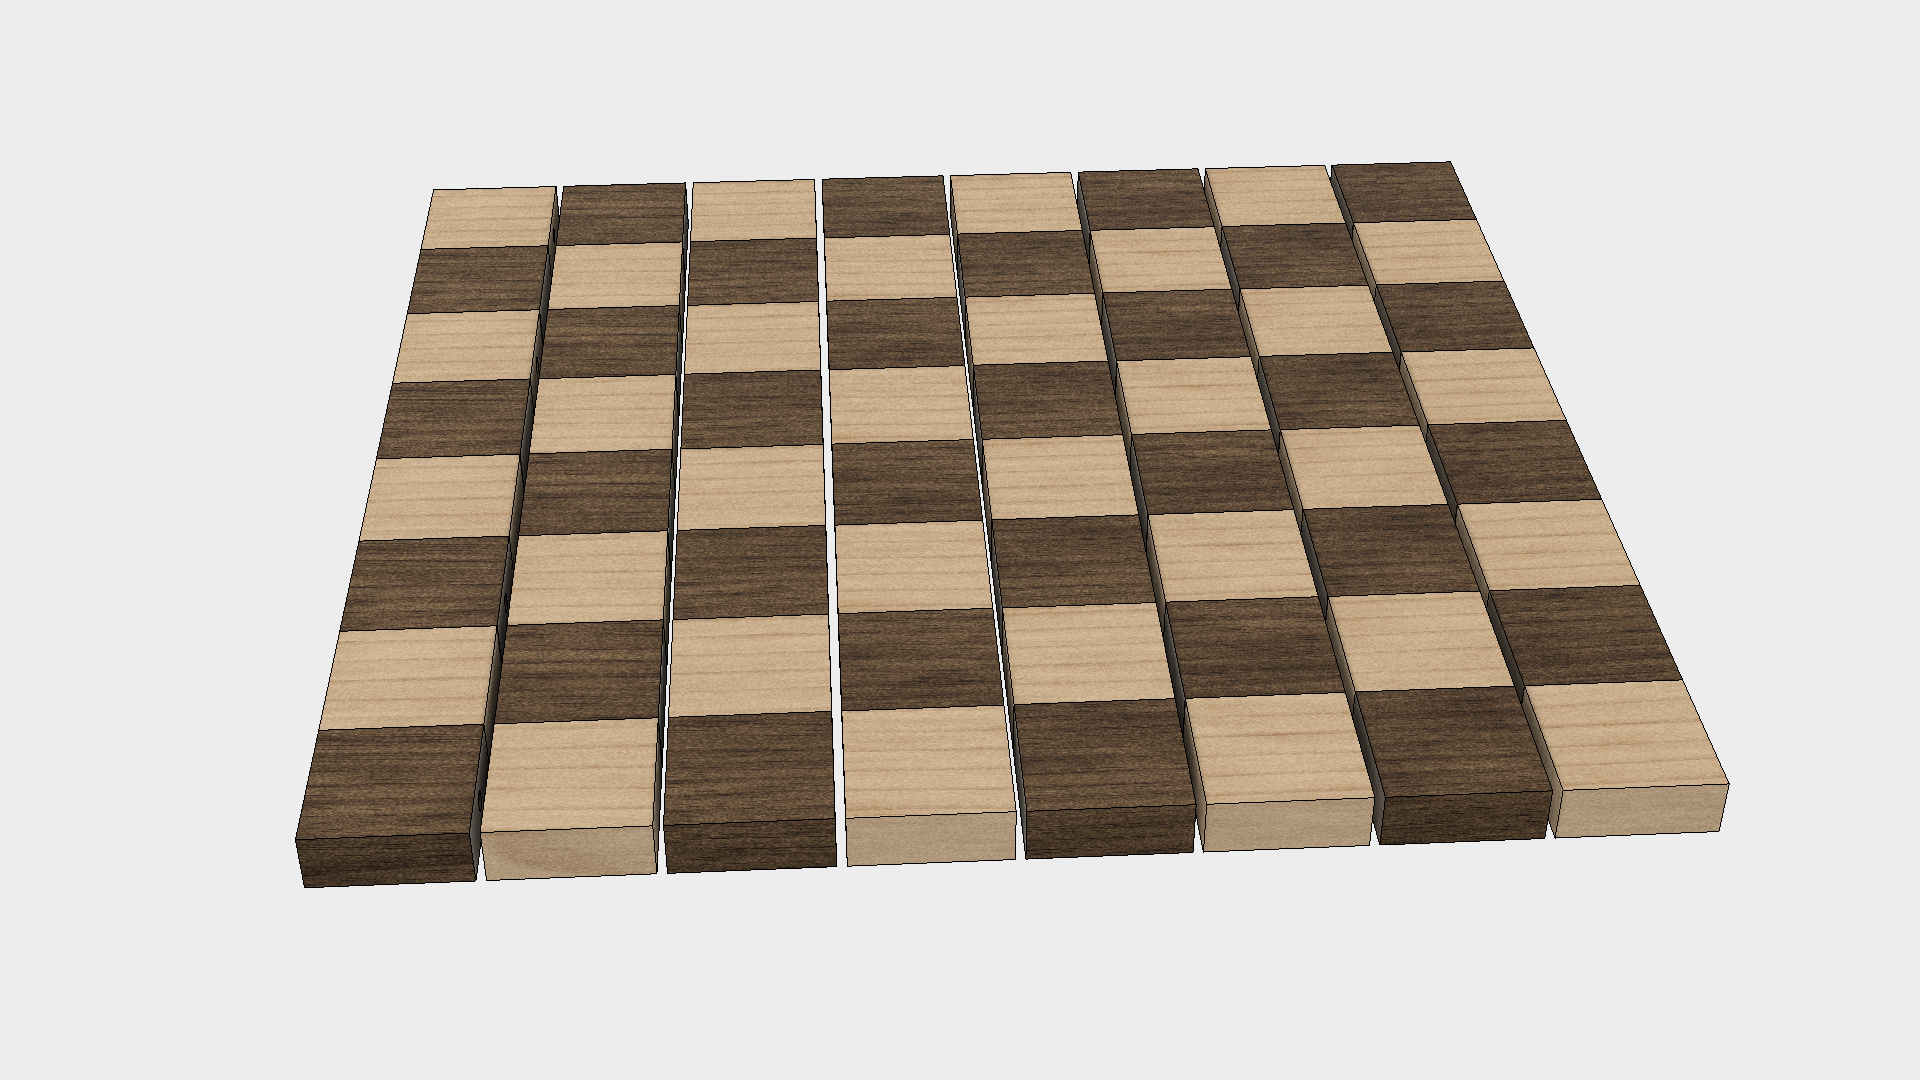 How to Make a Chess Board - Step 4